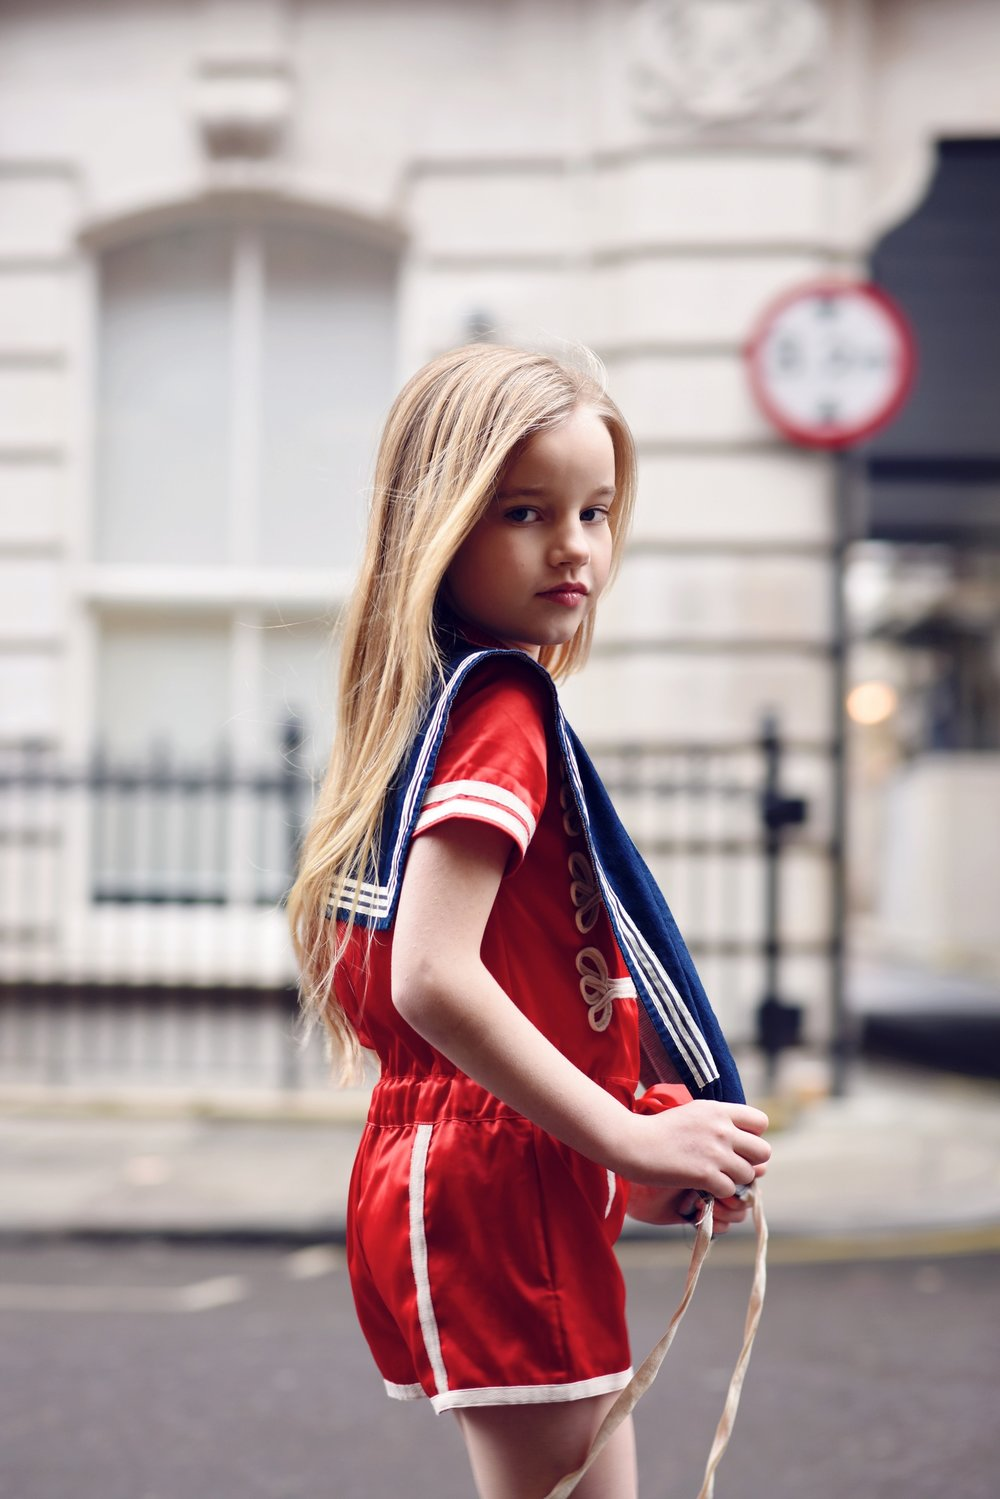 Enfant+Street+Style+by+Gina+Kim+Photography+Stella+McCartney+Kids.jpeg